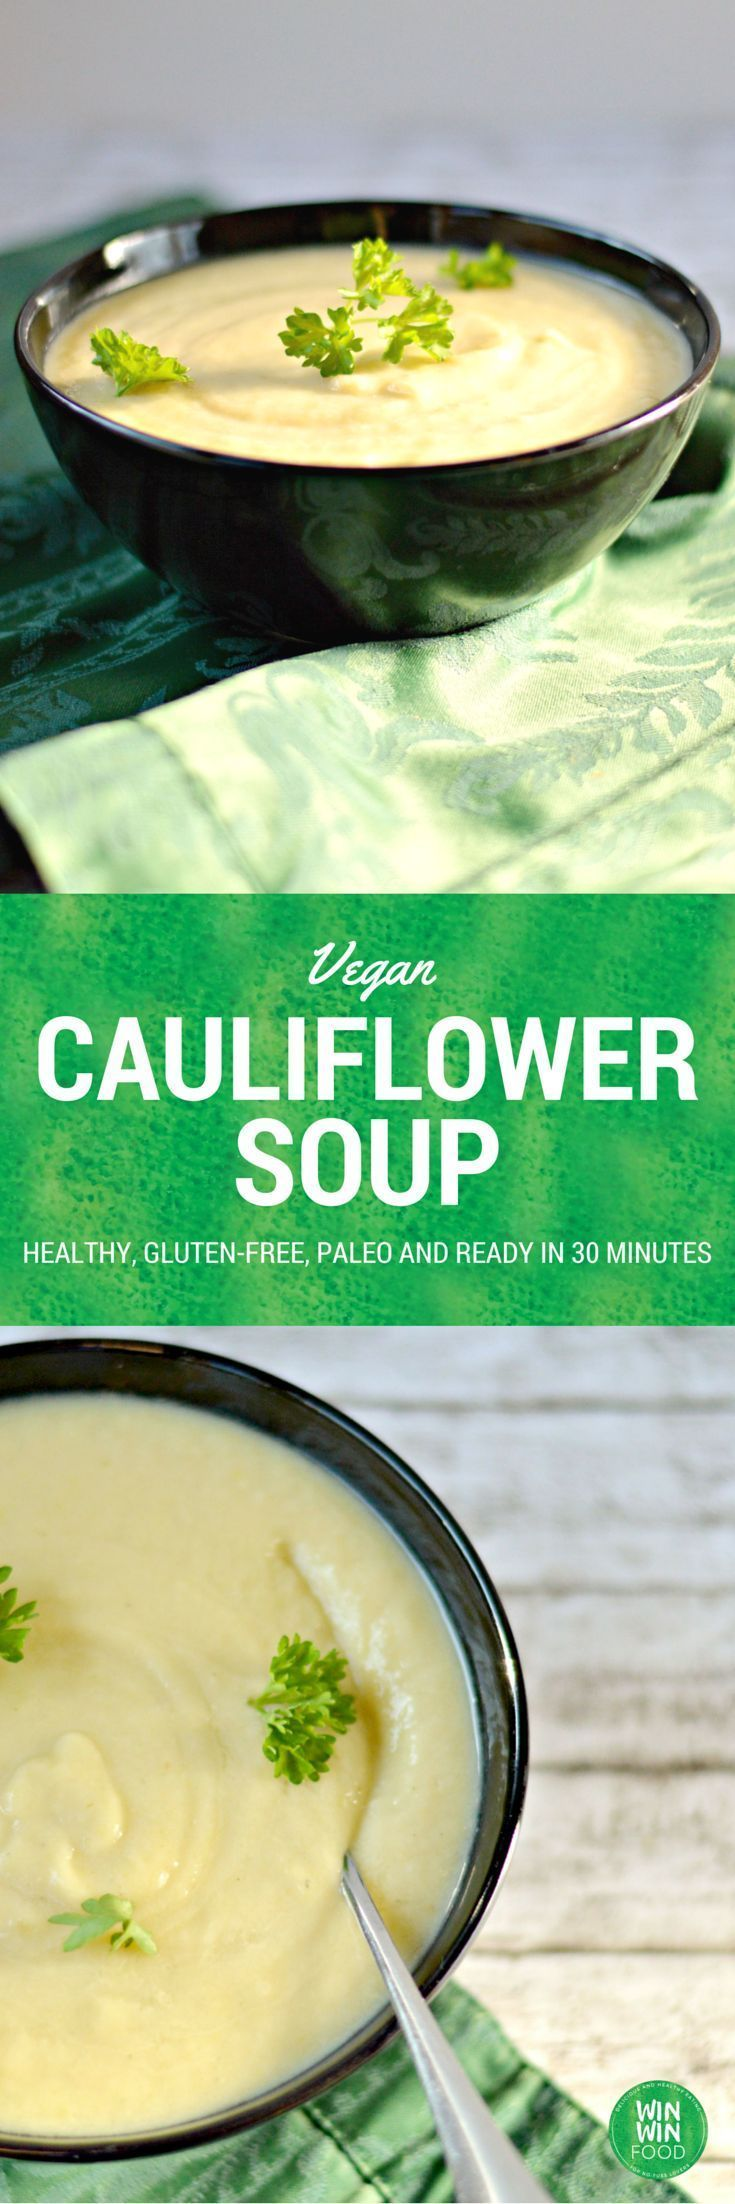 Vegan Cauliflower Soup | WIN-WINFOOD.com Extra rich and creamy, this quick &…